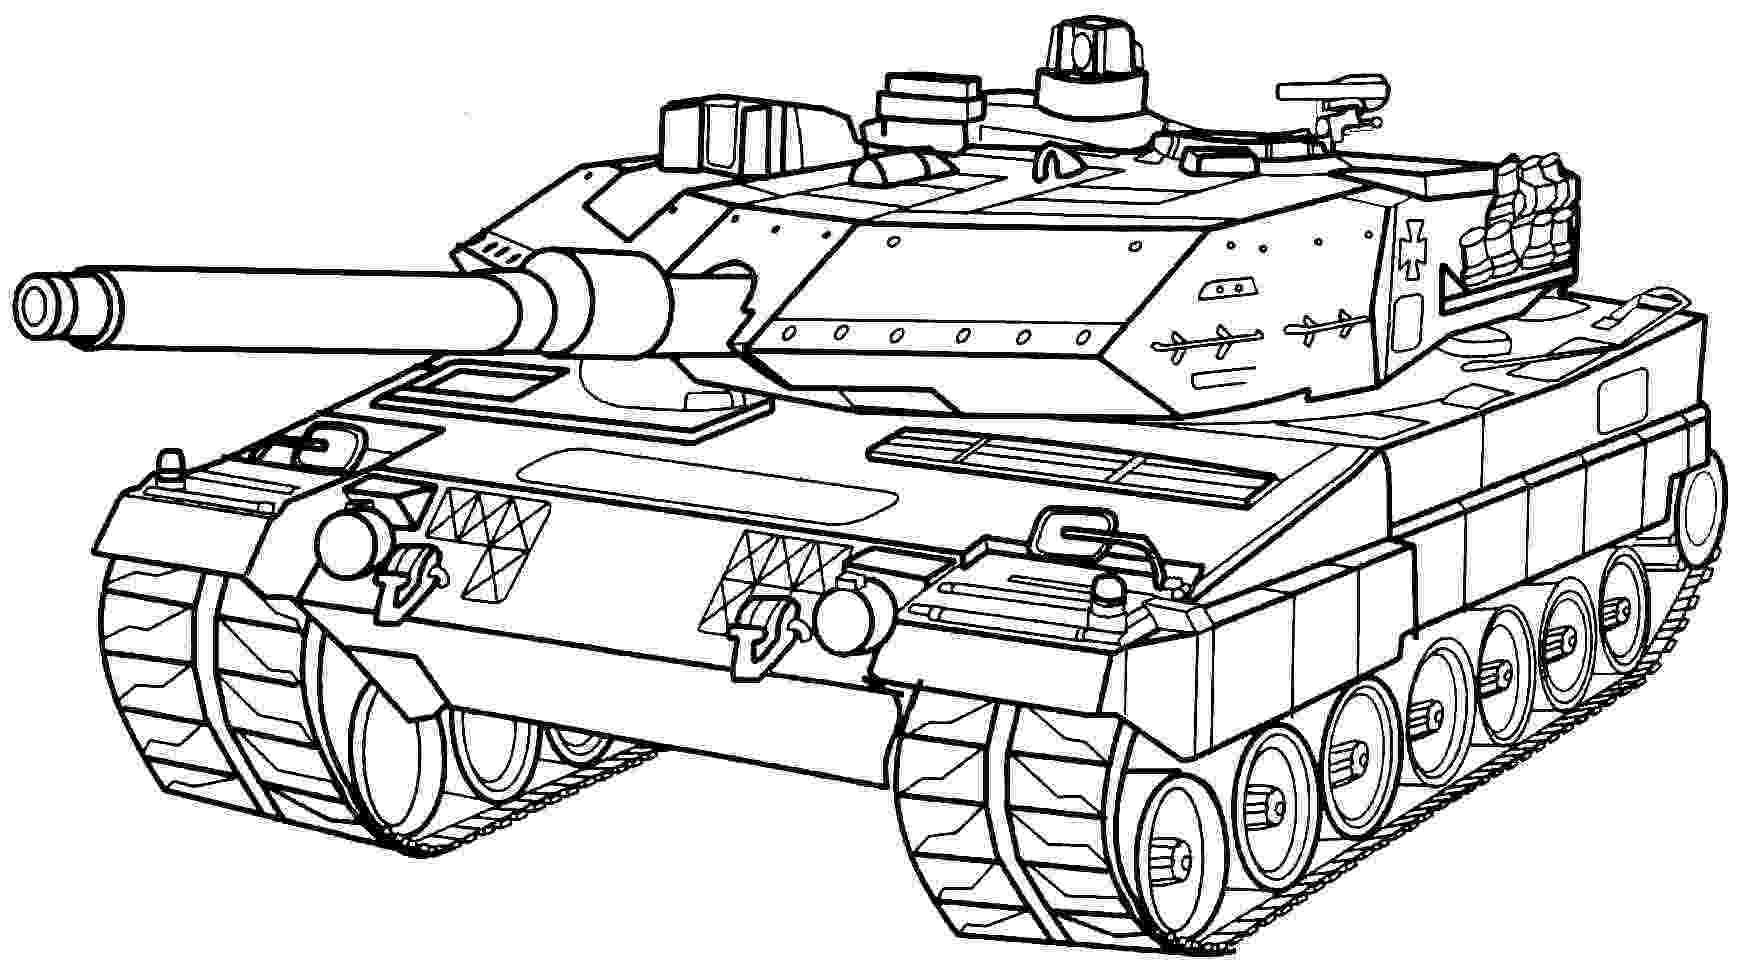 coloring pages army free printable army coloring pages for kids coloring army pages 1 1